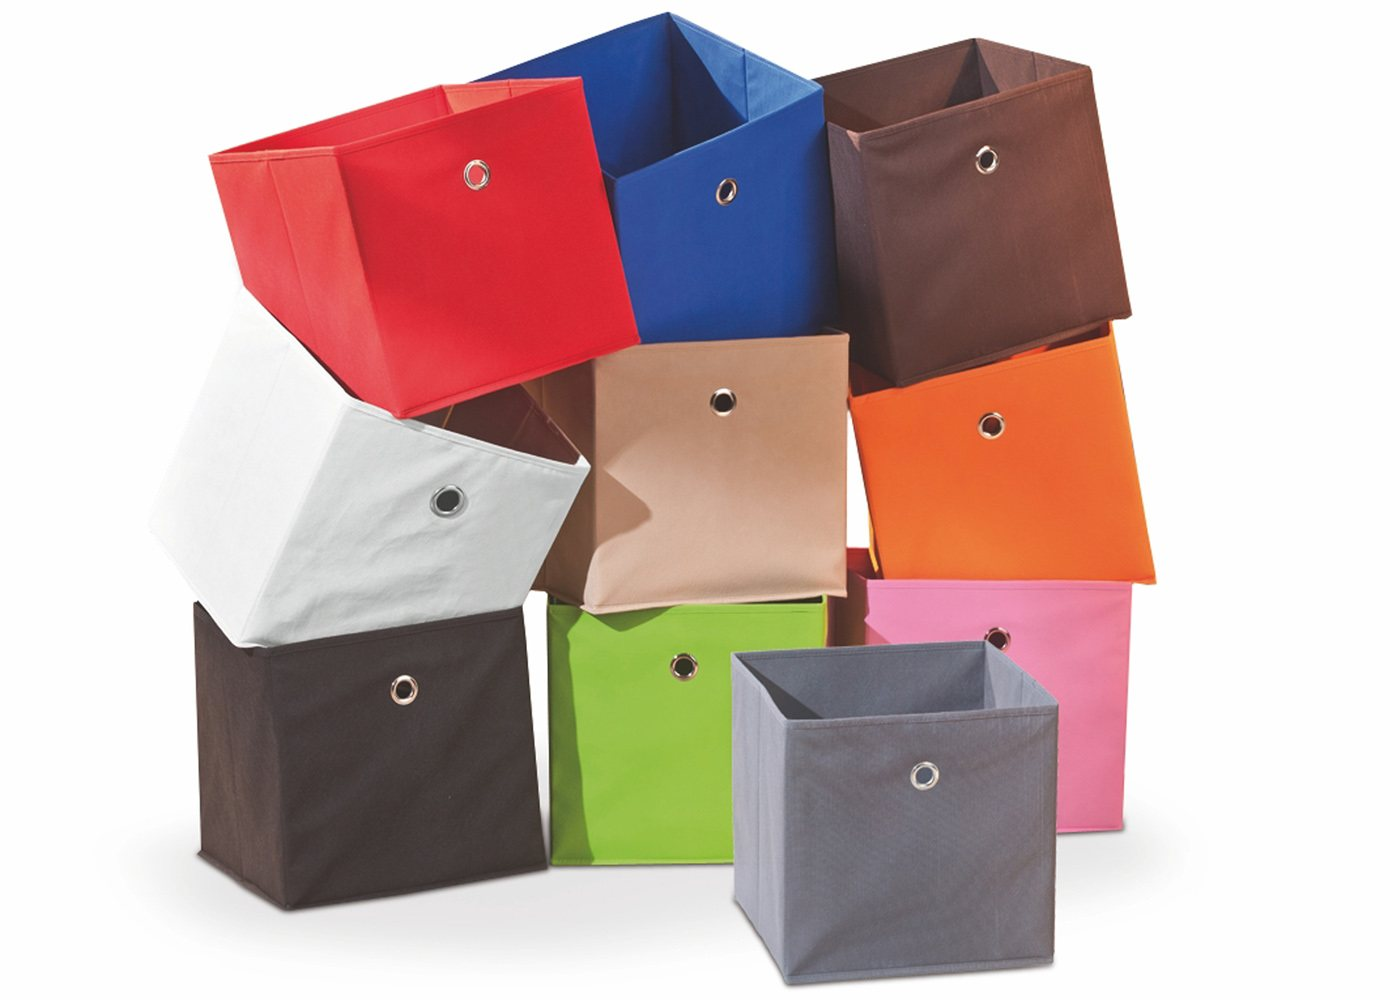 fabric boxes for shelving units various  colors